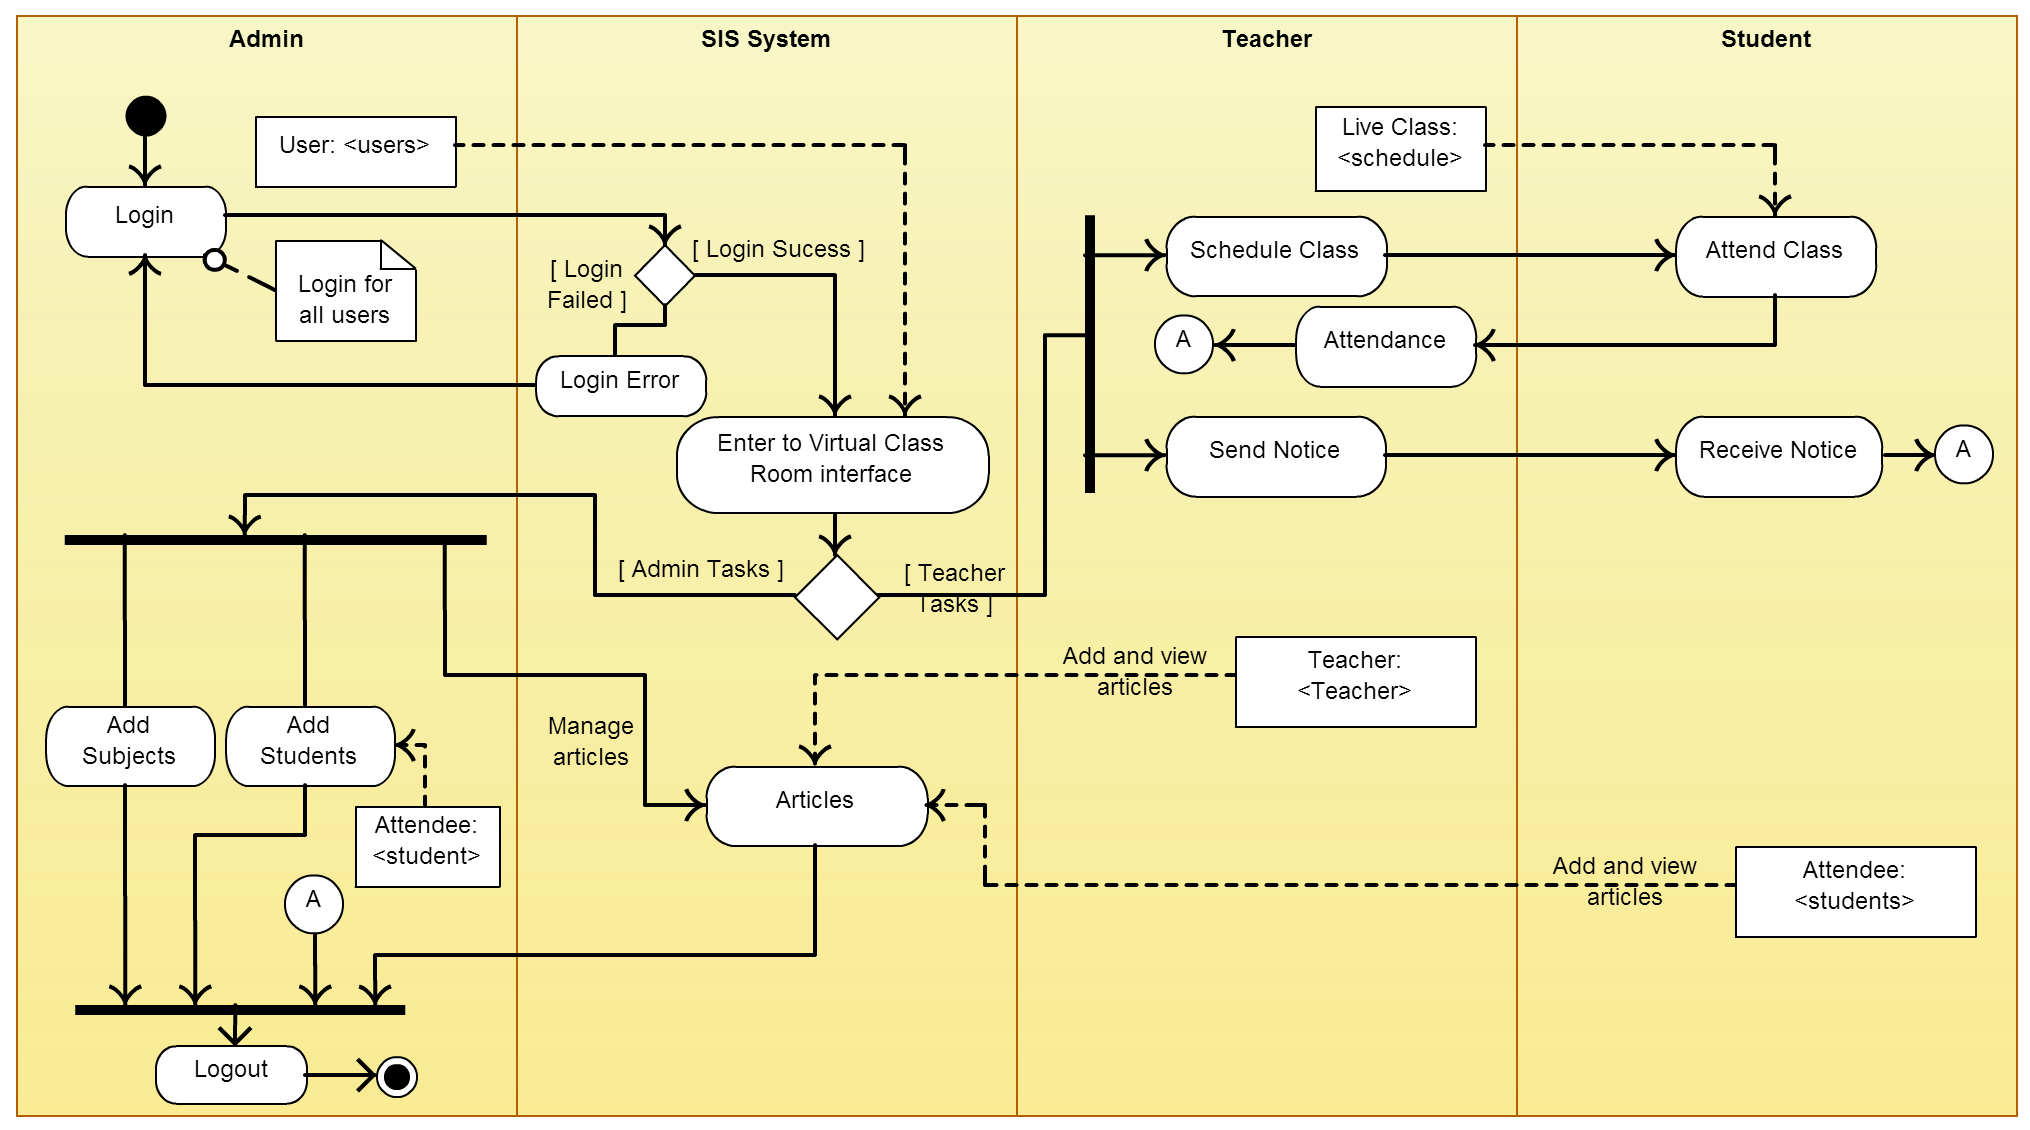 an example of document management process activity diagram tool